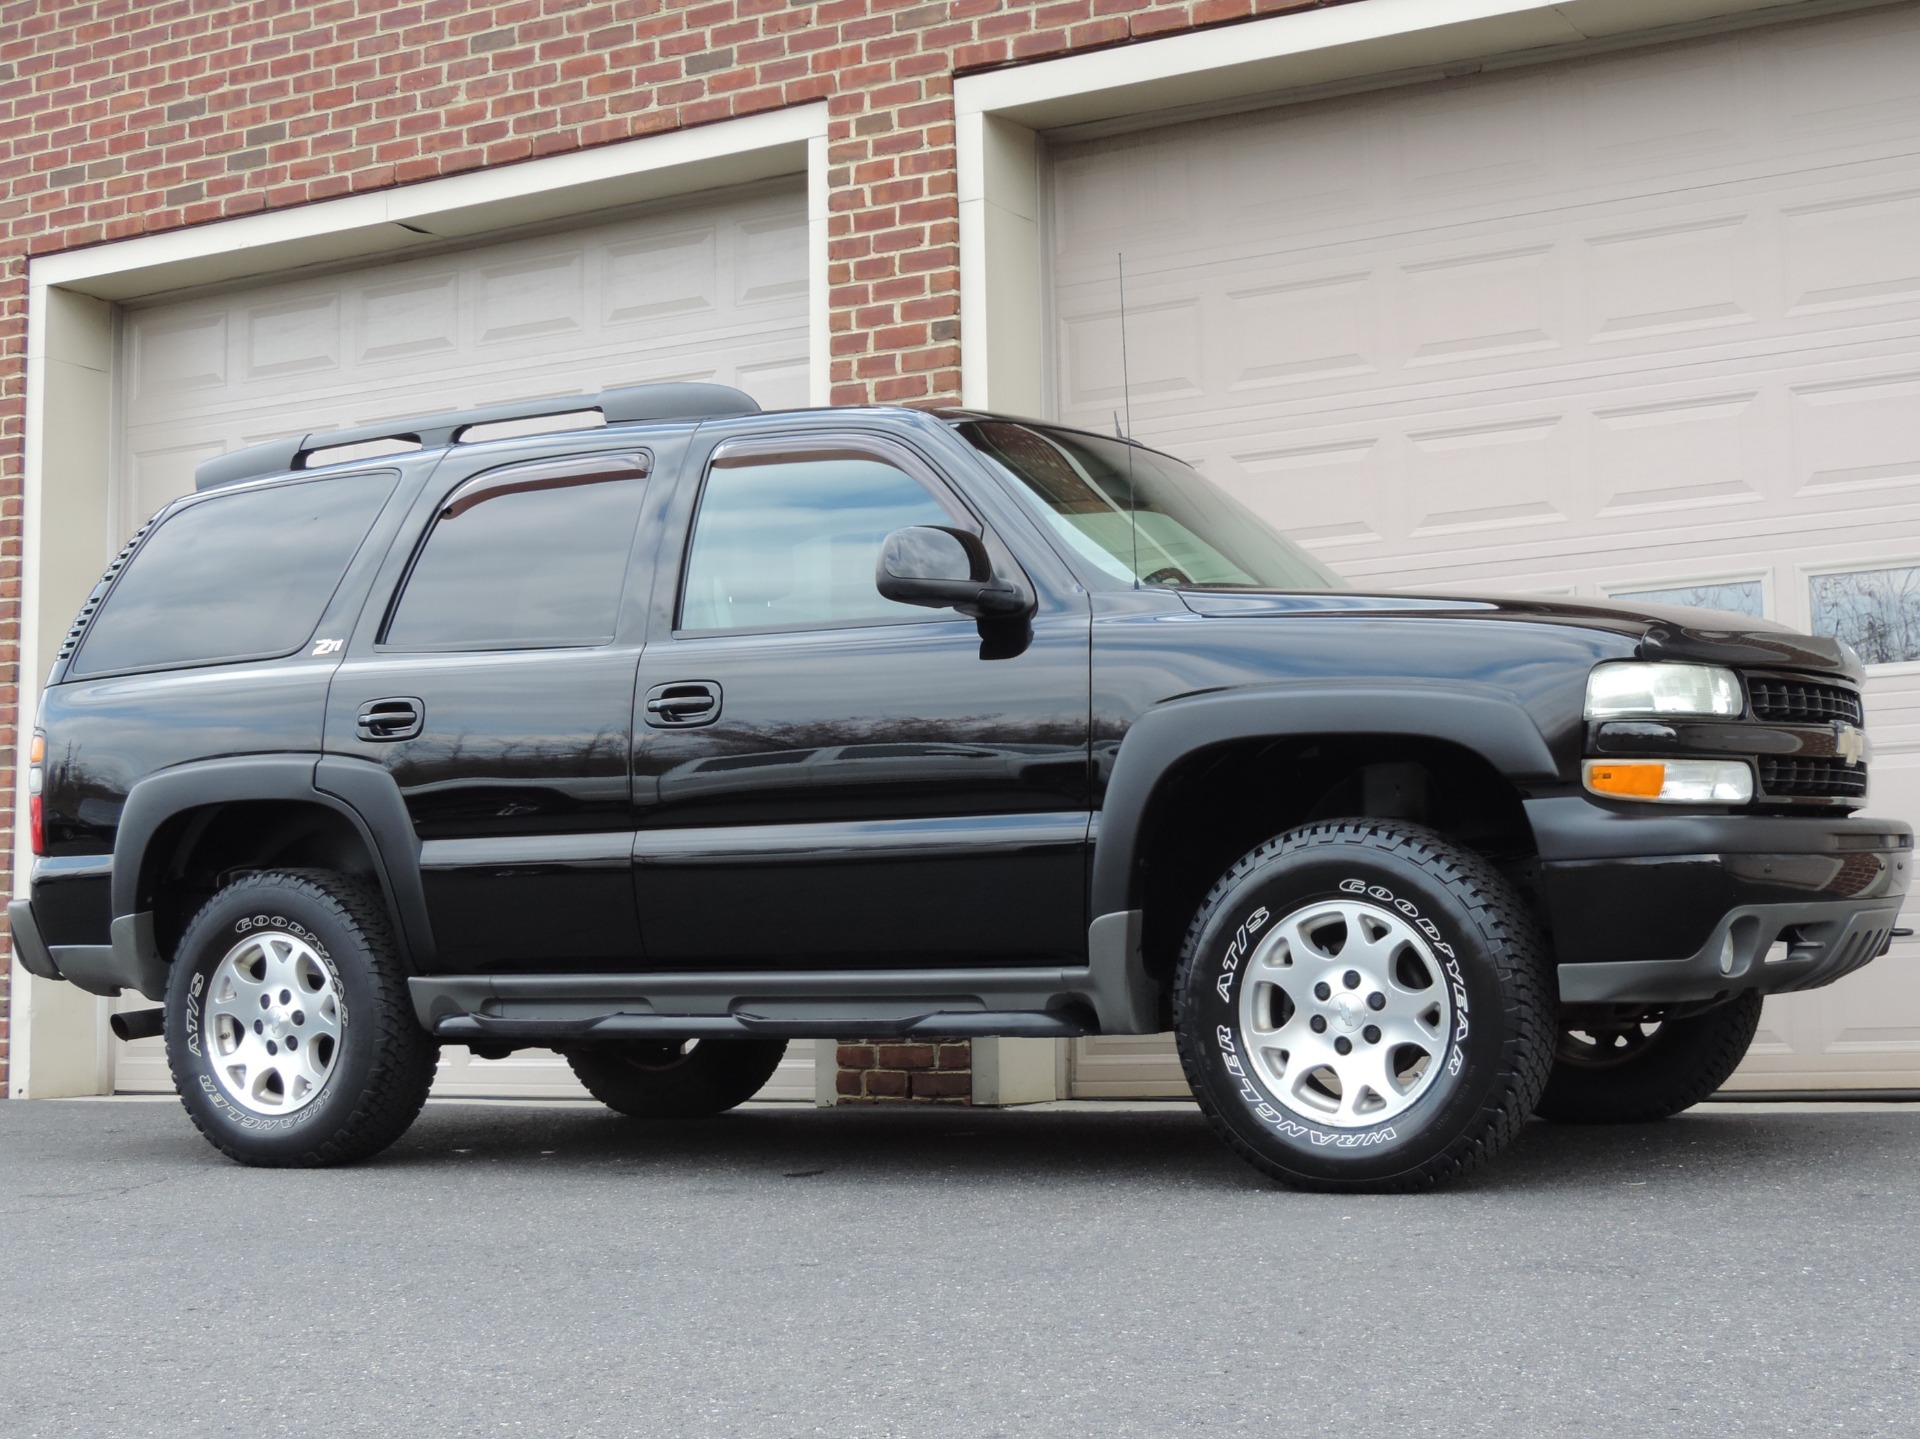 tahoe 2004 z71 chevrolet anti theft front side system power mirrors door mirror dimming alarm locks adjustments signals airbags integrated